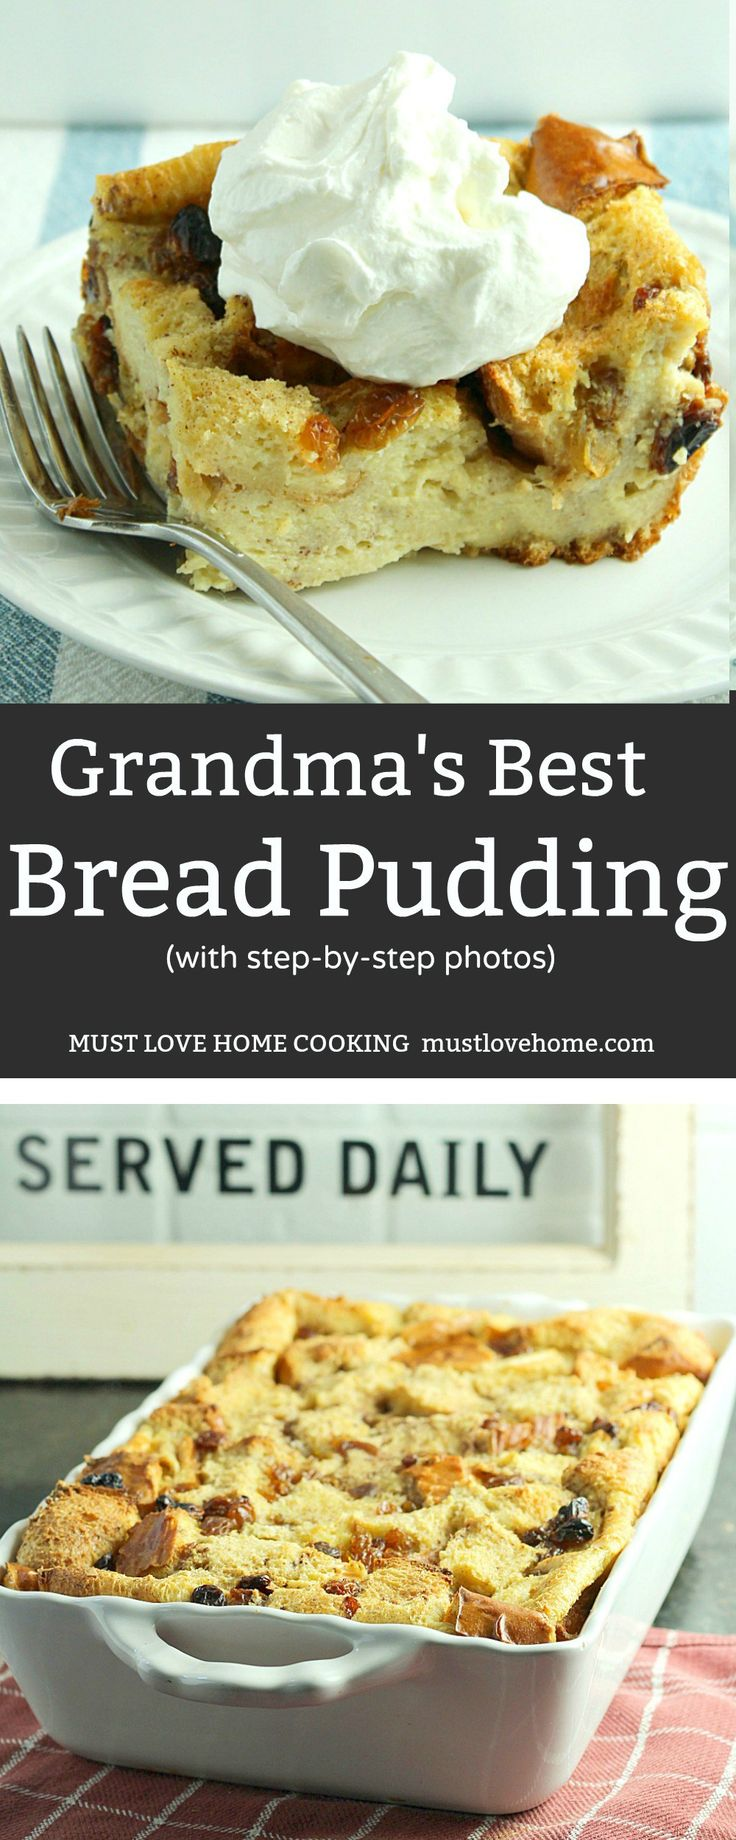 Grandma's Secret Recipe Bread Pudding is an easy to make traditional dessert sure to be a family favorite. Made with crusty bread and other simple ingredients, this is total comfort food! #dessert #food #recipes #cook #eeeats